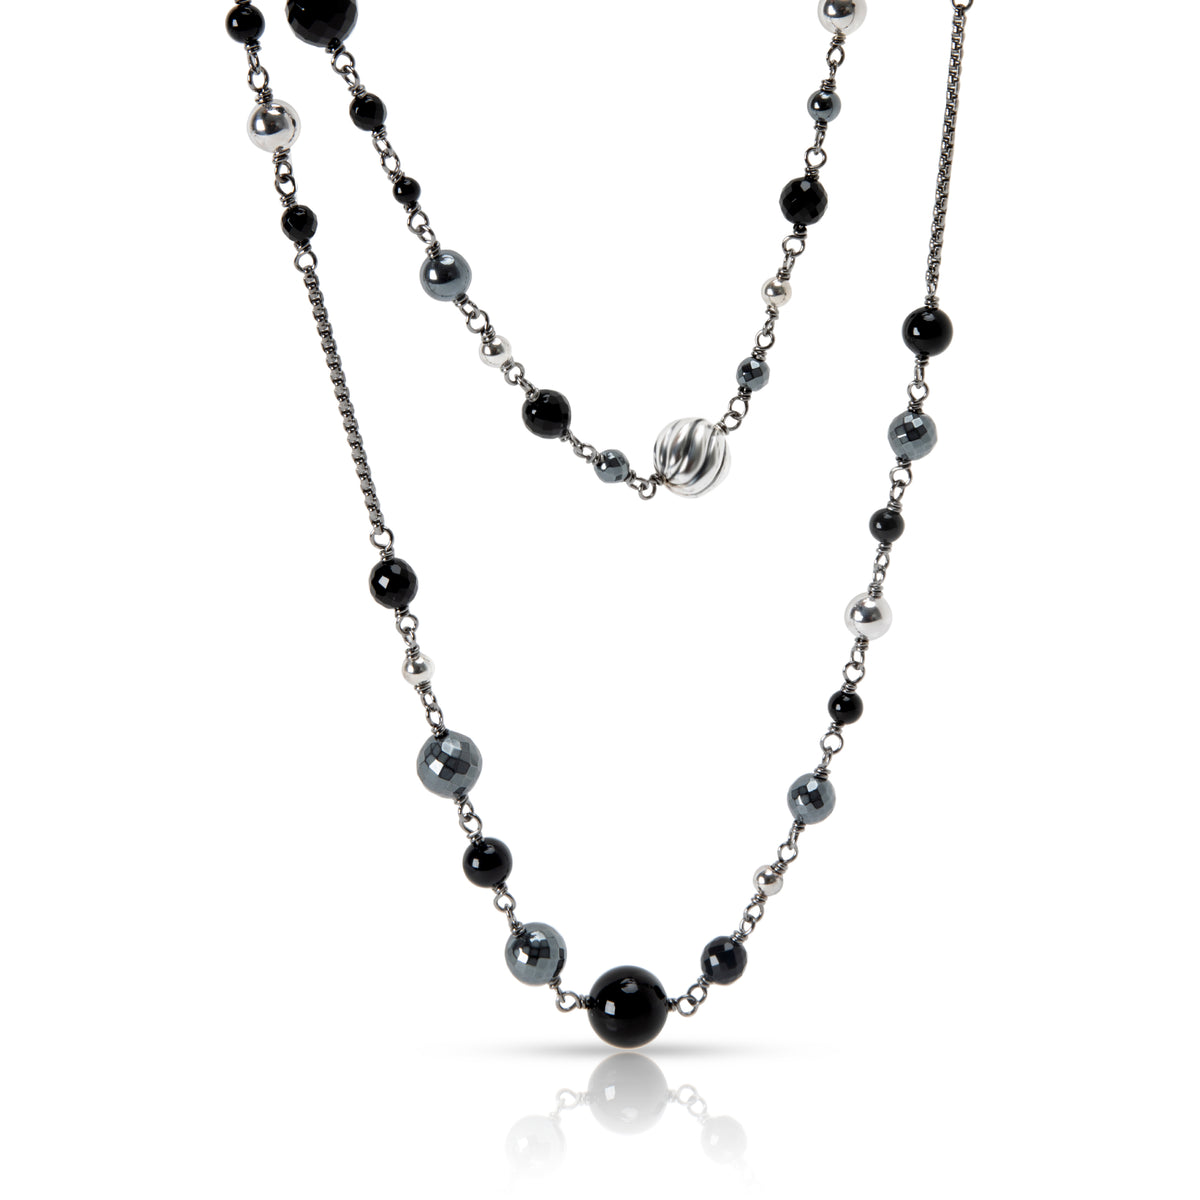 David Yurman  Bijoux Bead with Black Onyx & Hematite Necklace in Sterling Silver